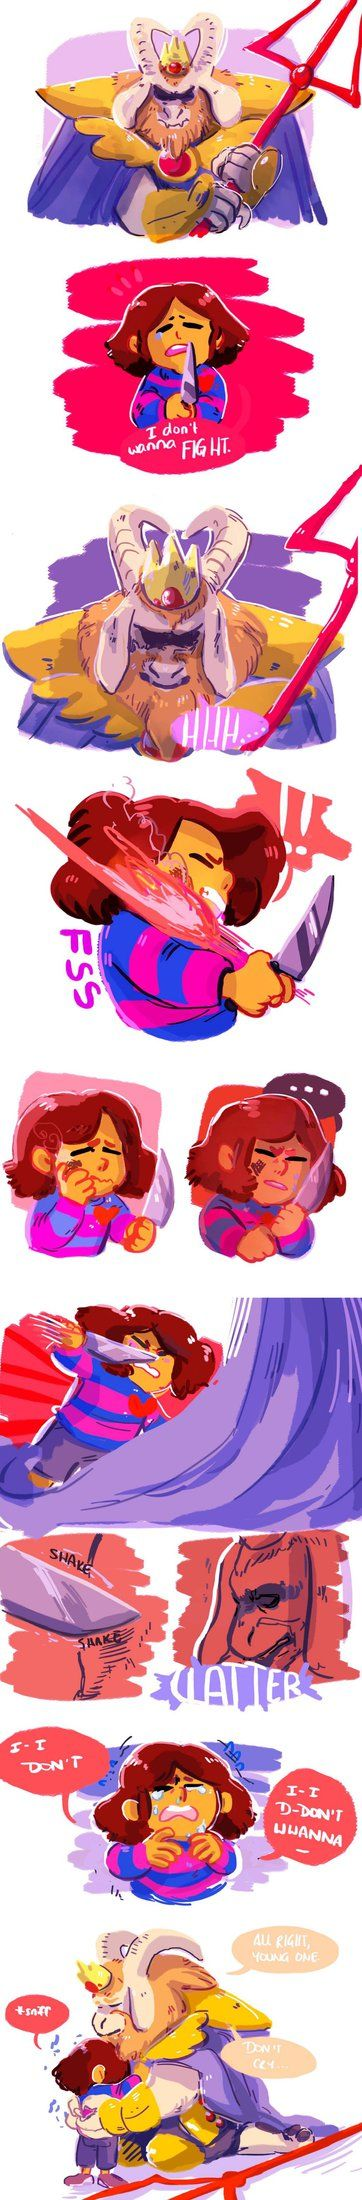 Frisk and Asgore - comic (No, no, no feels, don't do this to